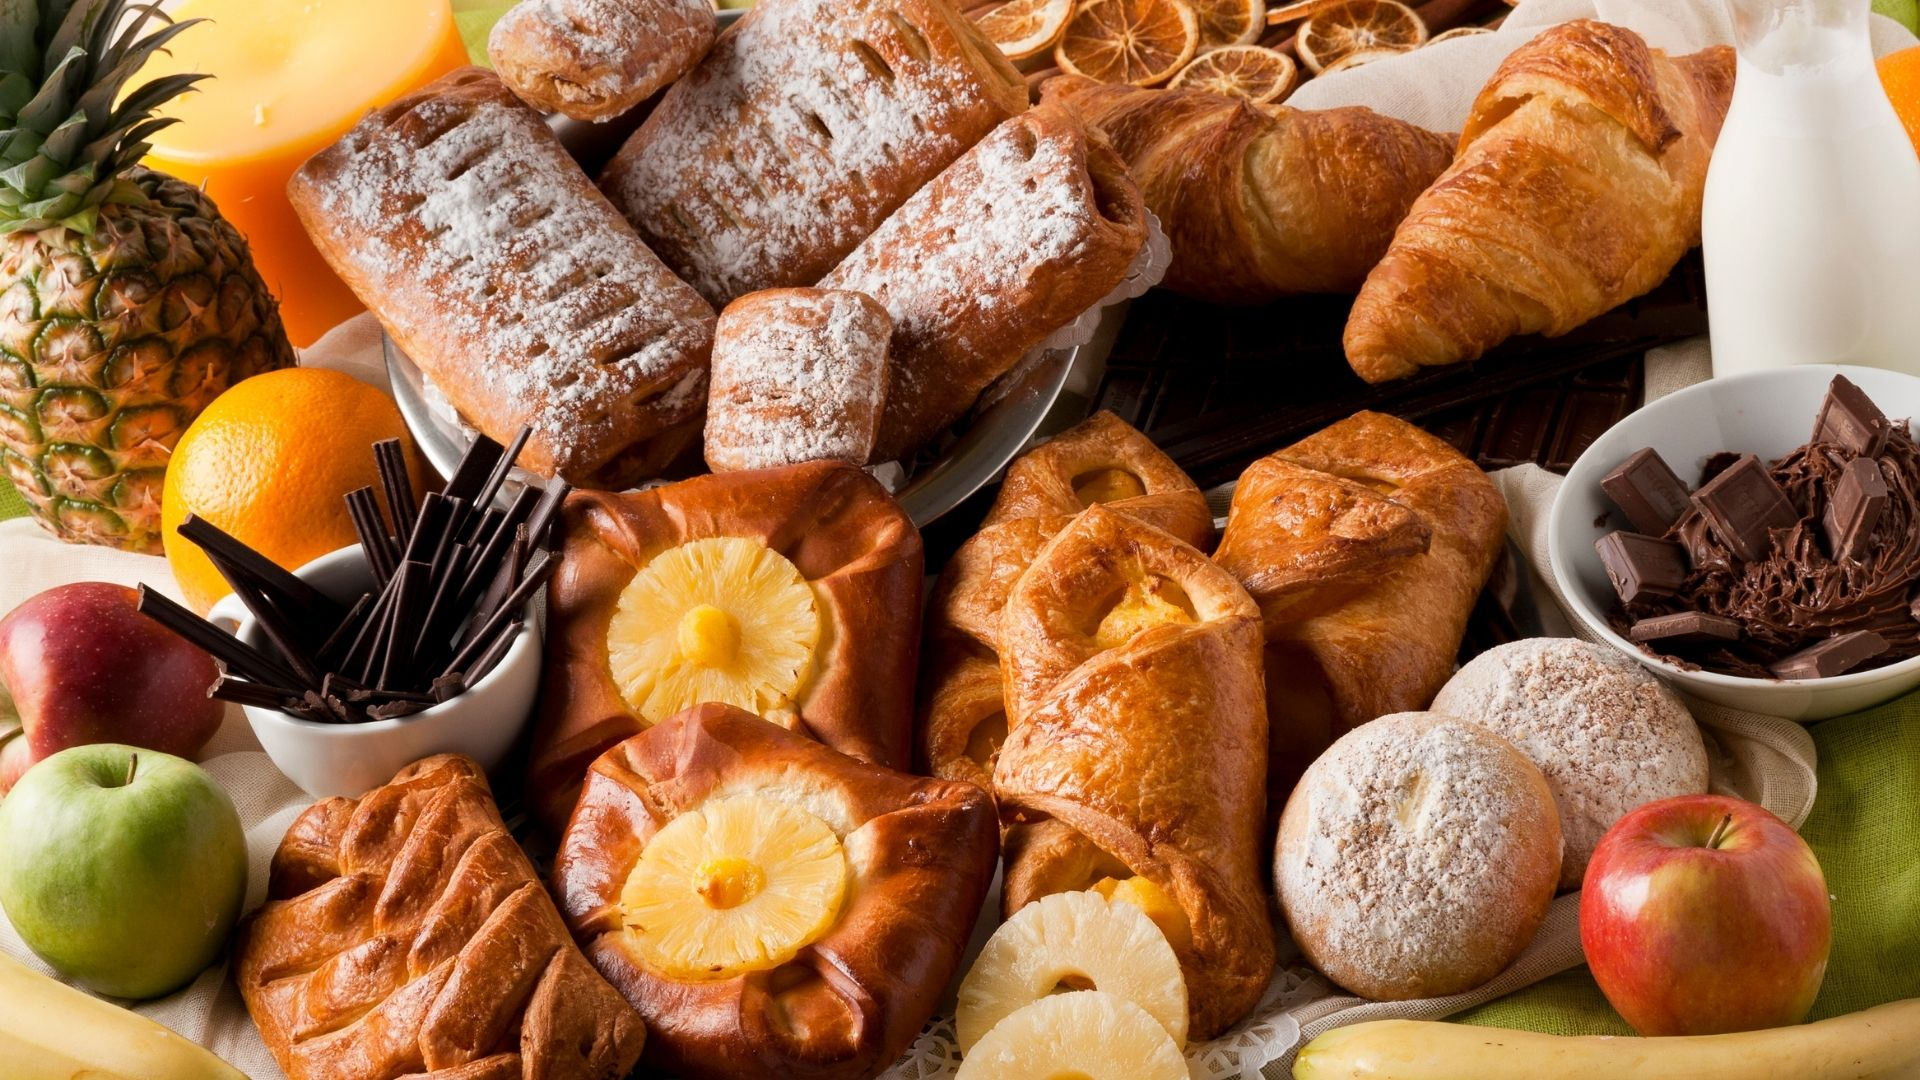 pastries - Common Food Combinations that Trigger Hypoglycemia or Sudden Hunger